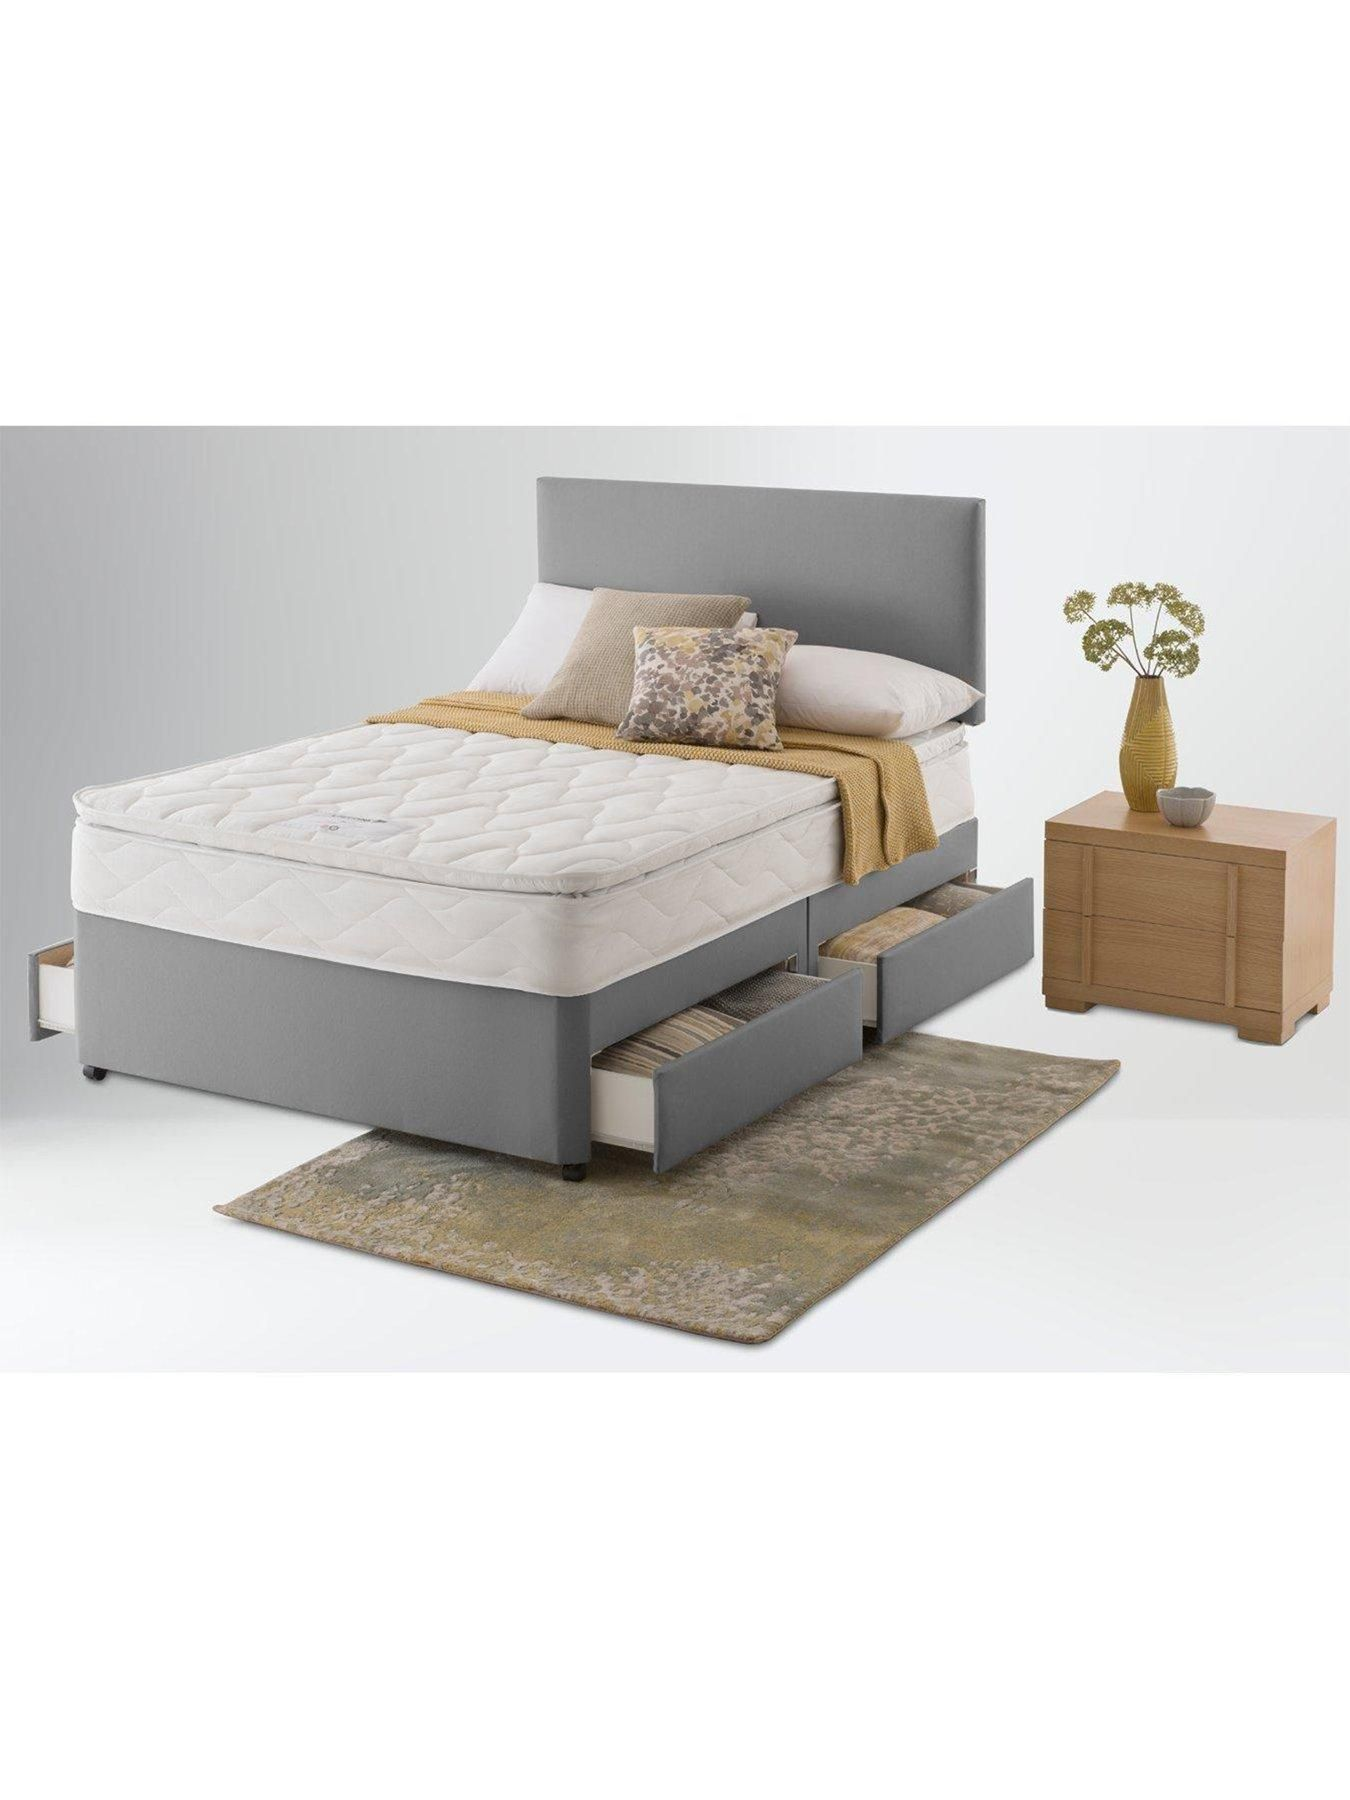 Silent Night Miracoil 3 Pillow Top Mattress Layezee Fenner Bonnel Pillowtop Spring Divan Bed With Storage